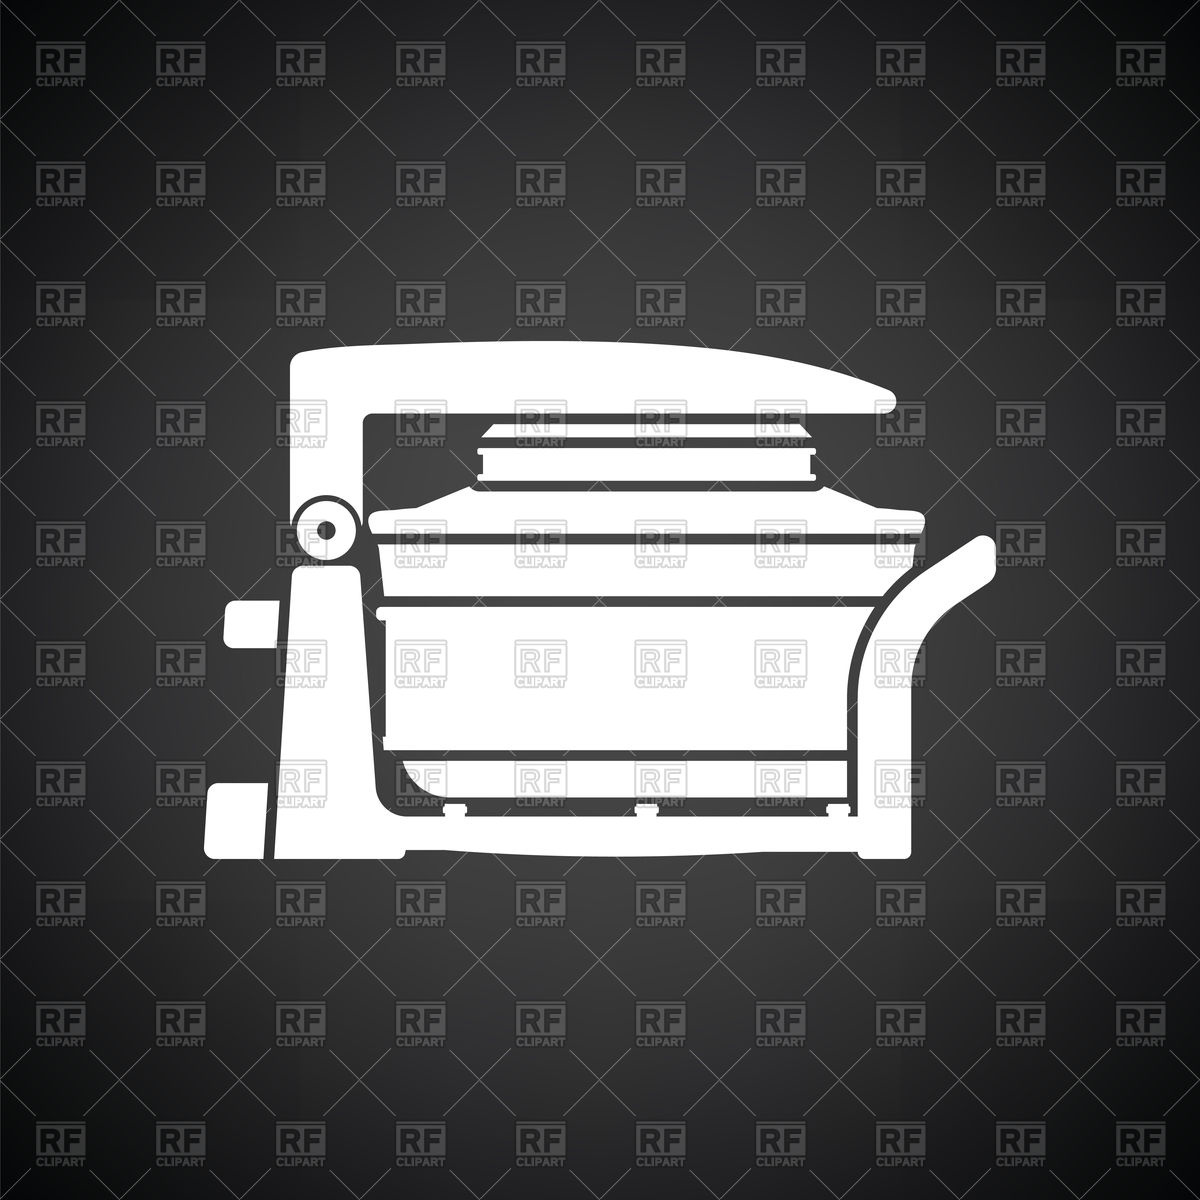 Electric convection oven icon on black background Vector Image of 1200x1200